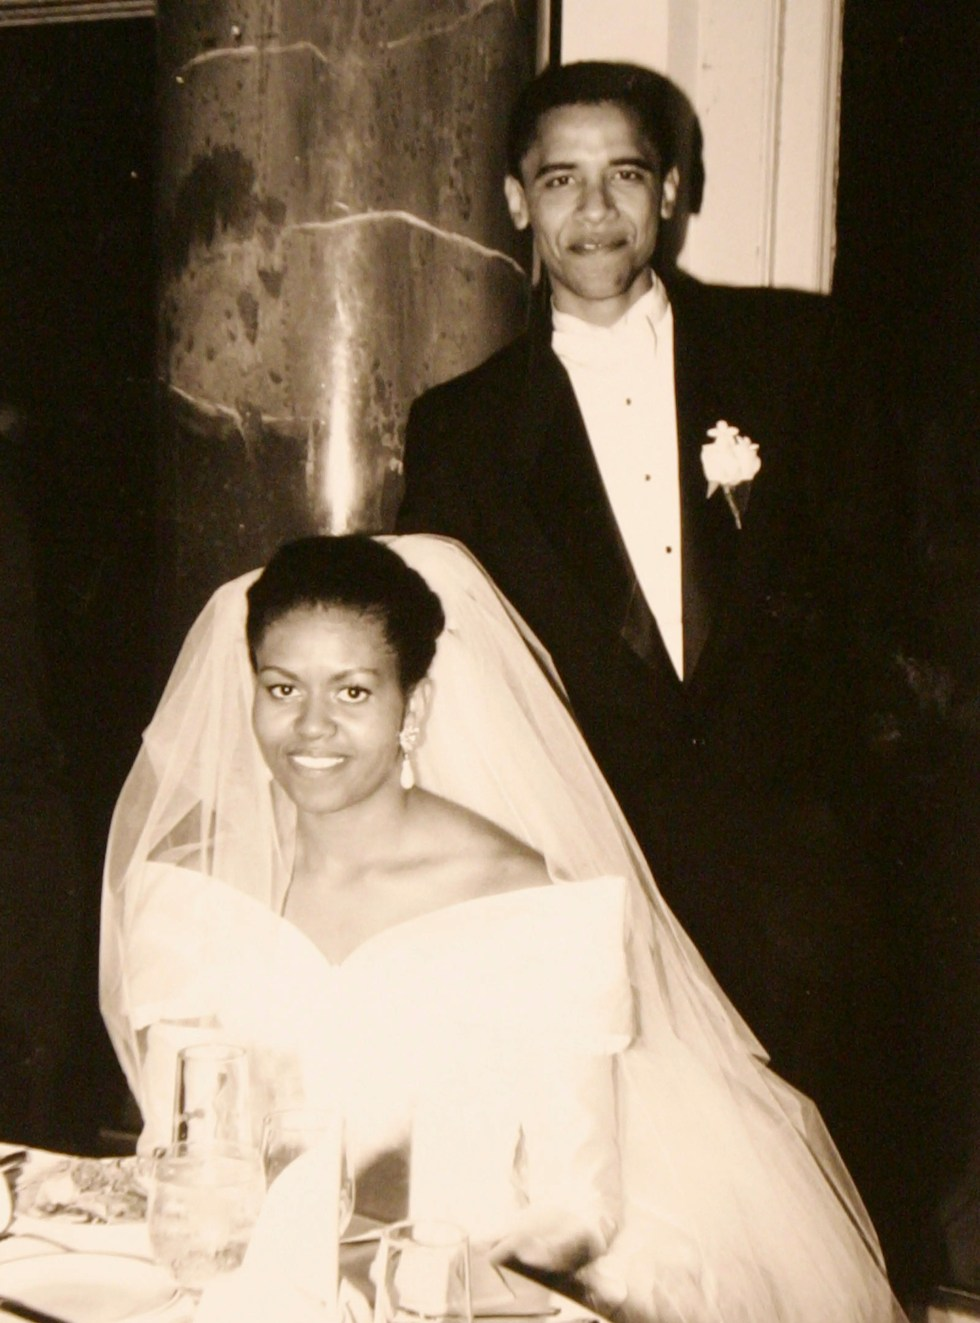 Barack and Michelle Obama were married on October 3, 1992. Michelle worked as a Chicago city government as an assistant to the mayor while Barack taught  constitutional law at the University of Chicago Law School.